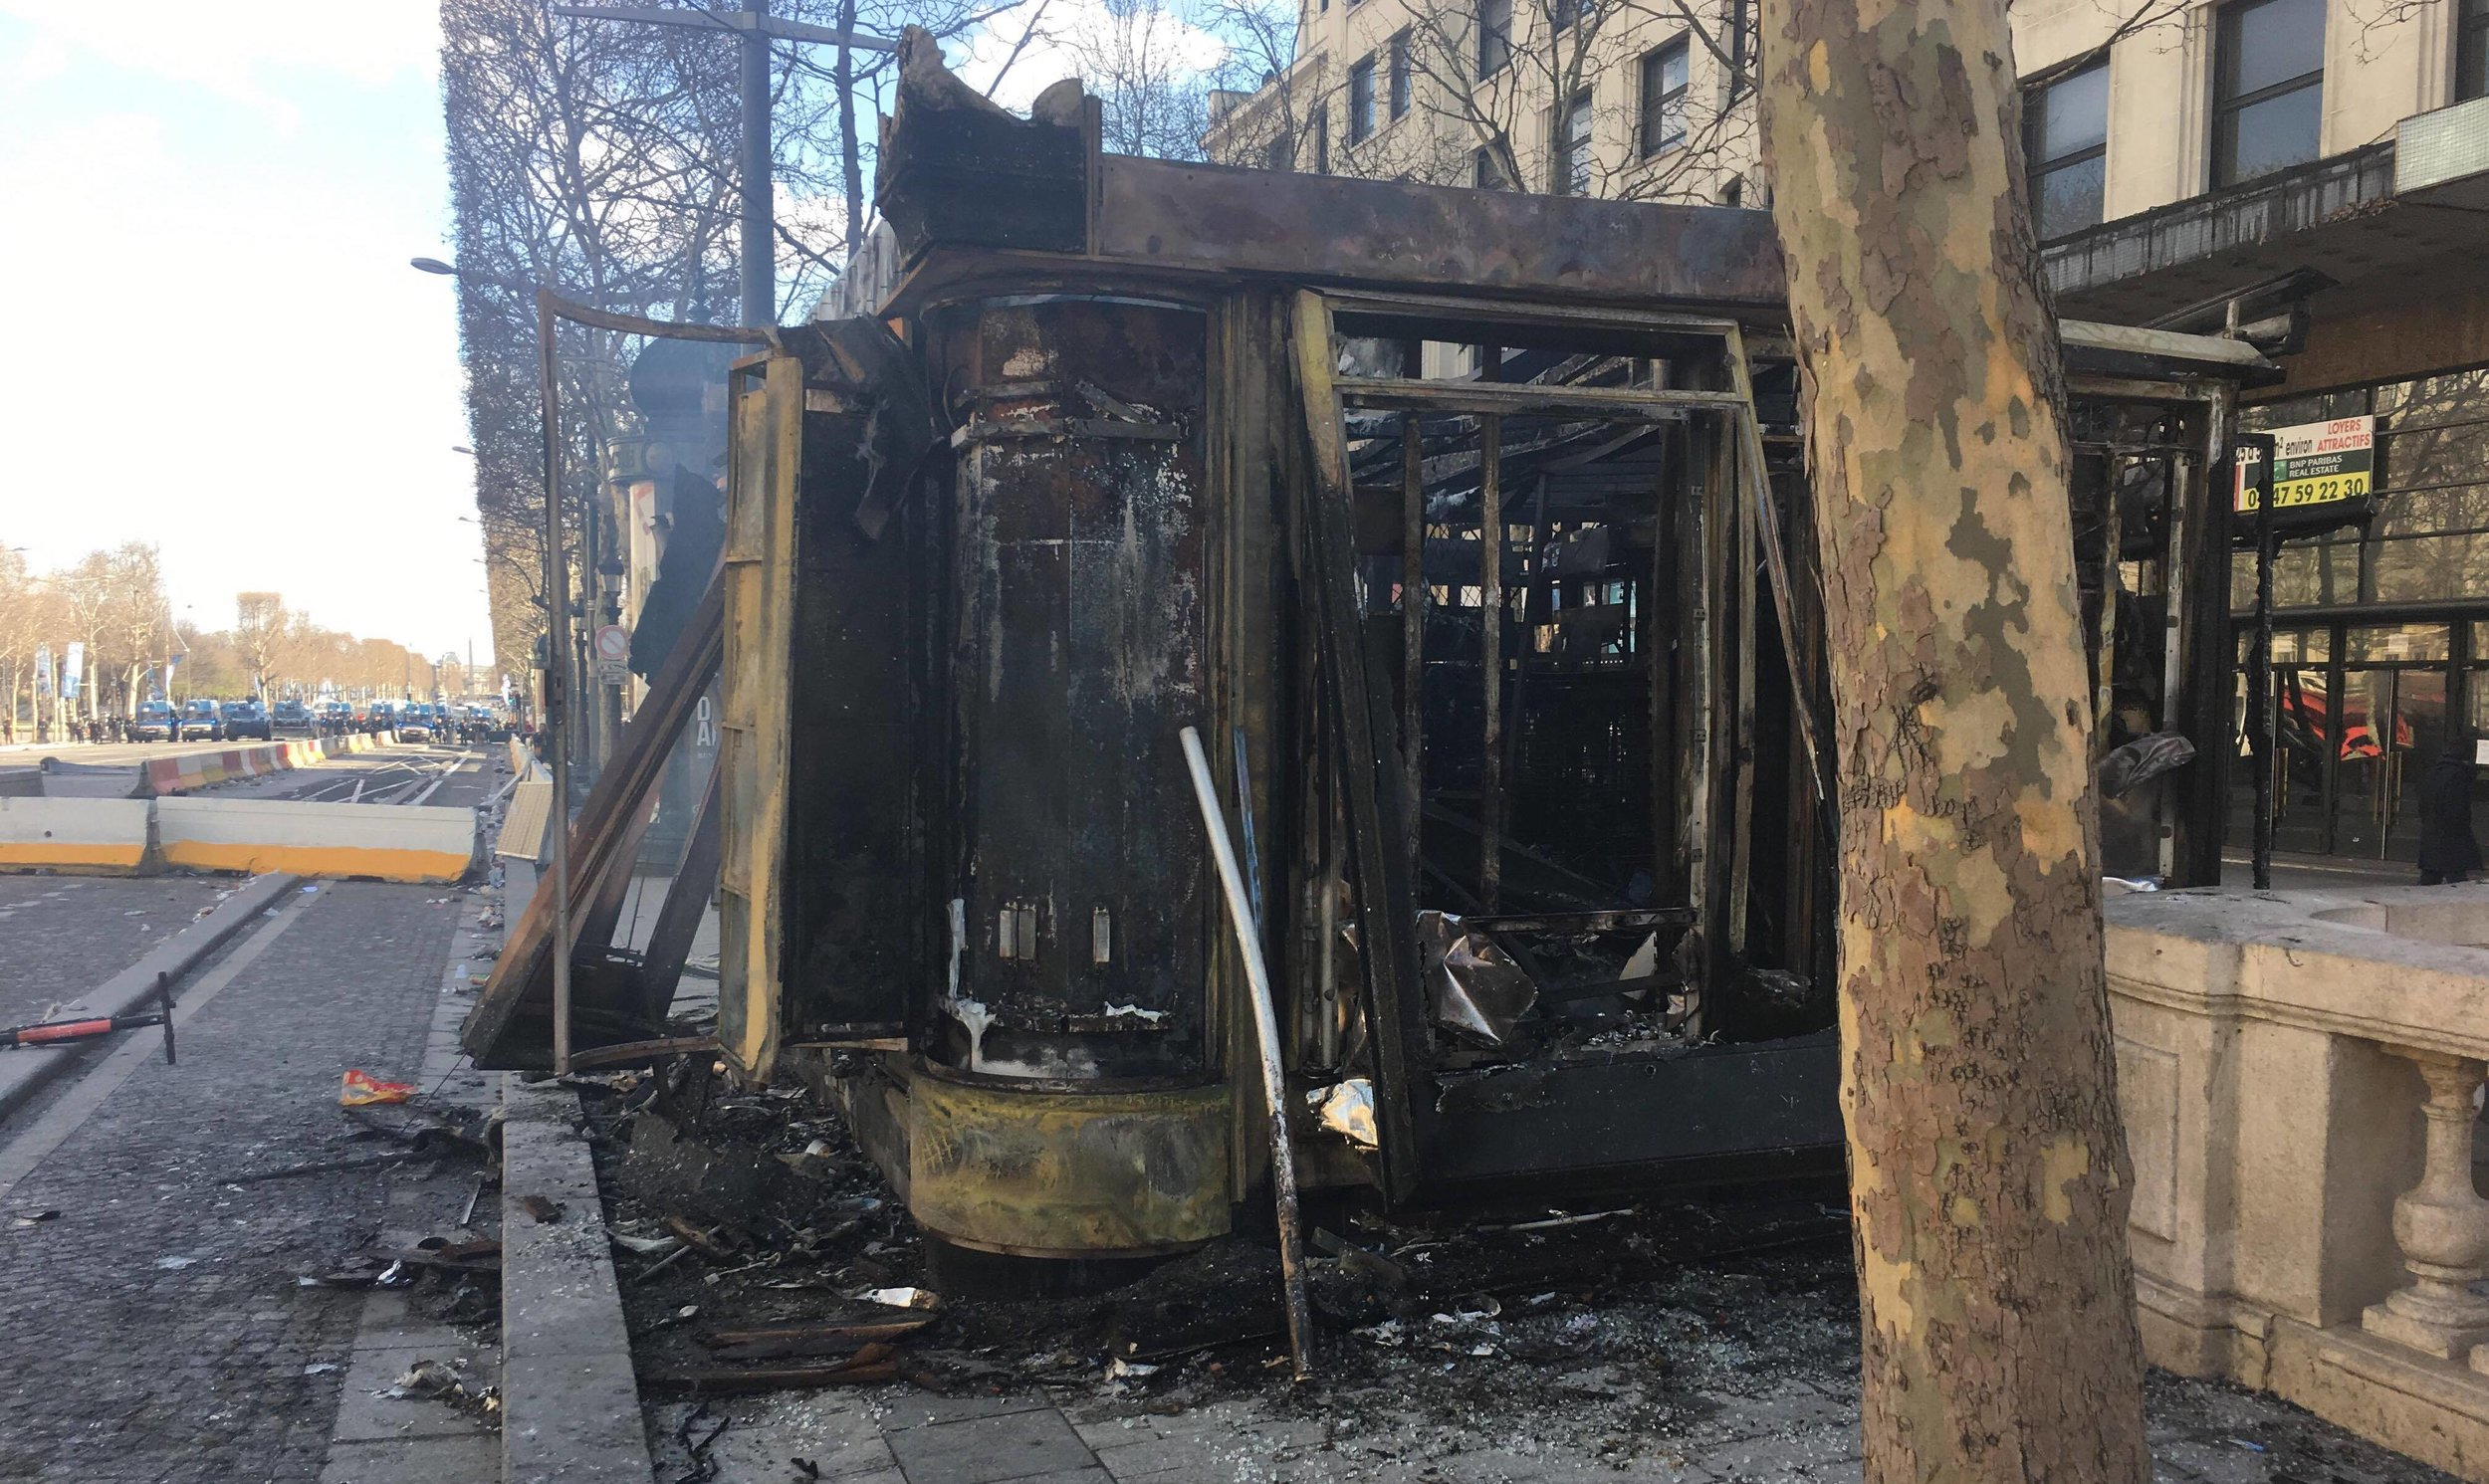 A storefront burned in the Yellow Vest protests in Paris, France (Image: Lauryl Fright)